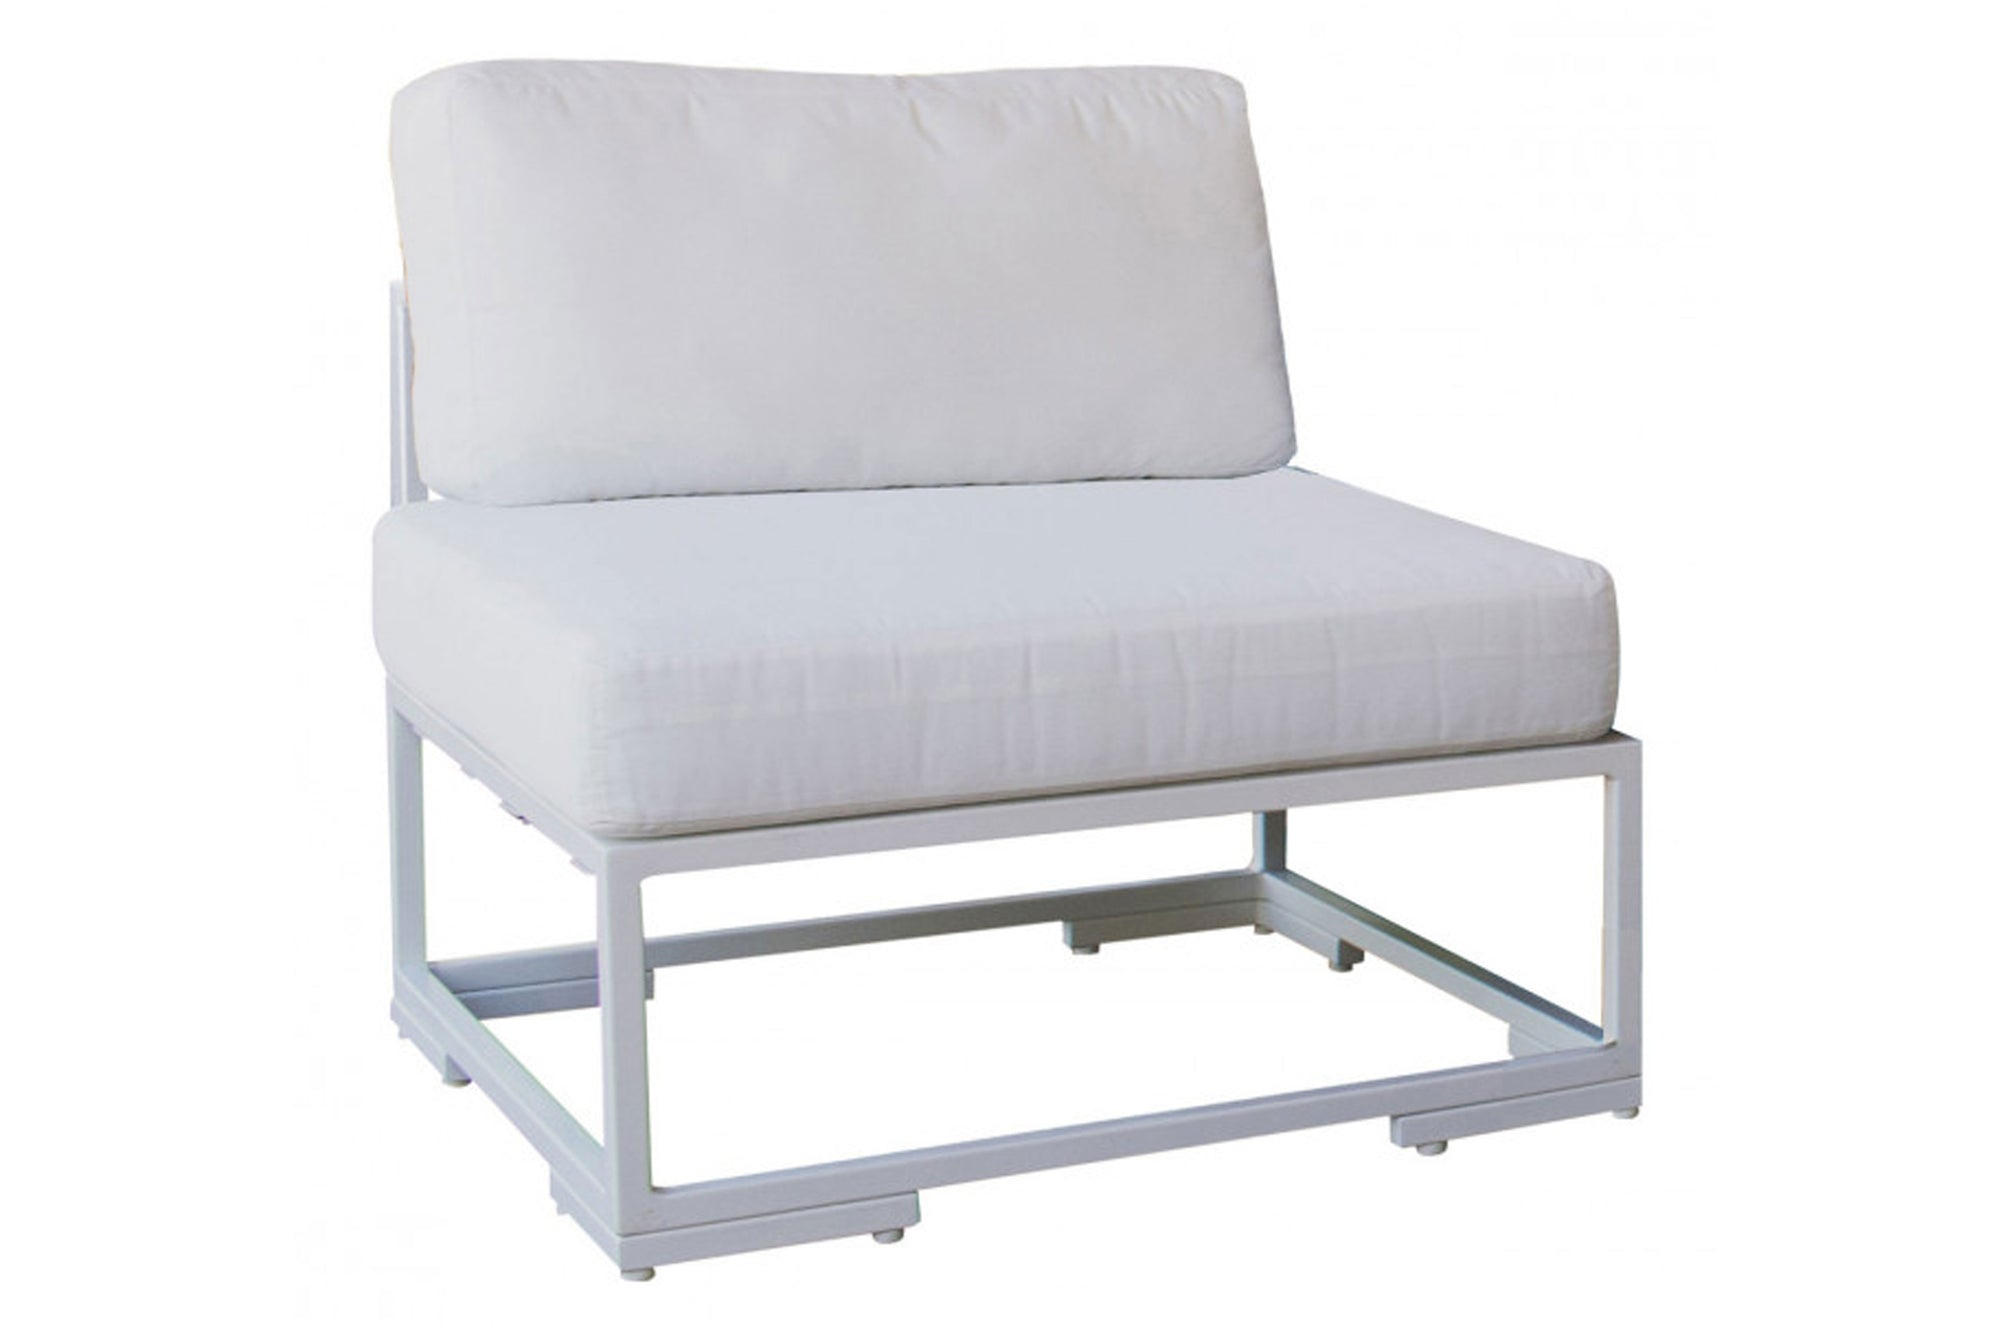 Odyssey Armless Chair w/off-white cushion